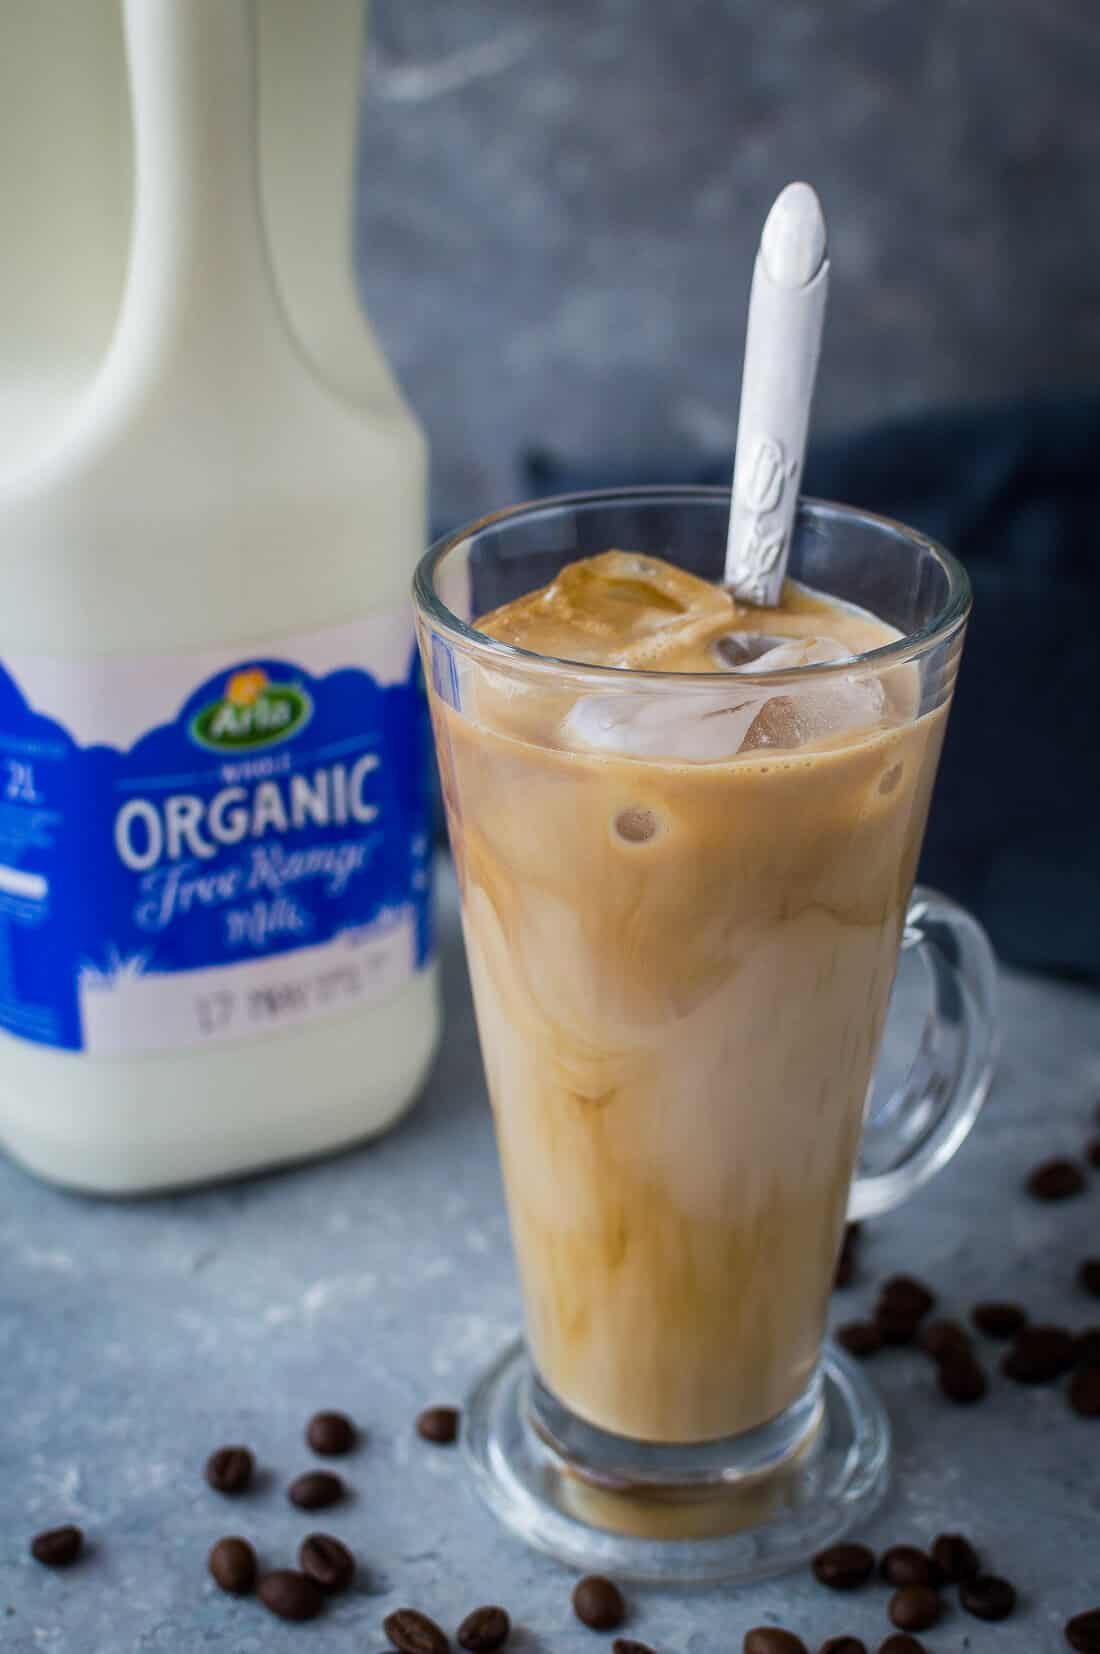 iced coffee with Arla organic whole milk